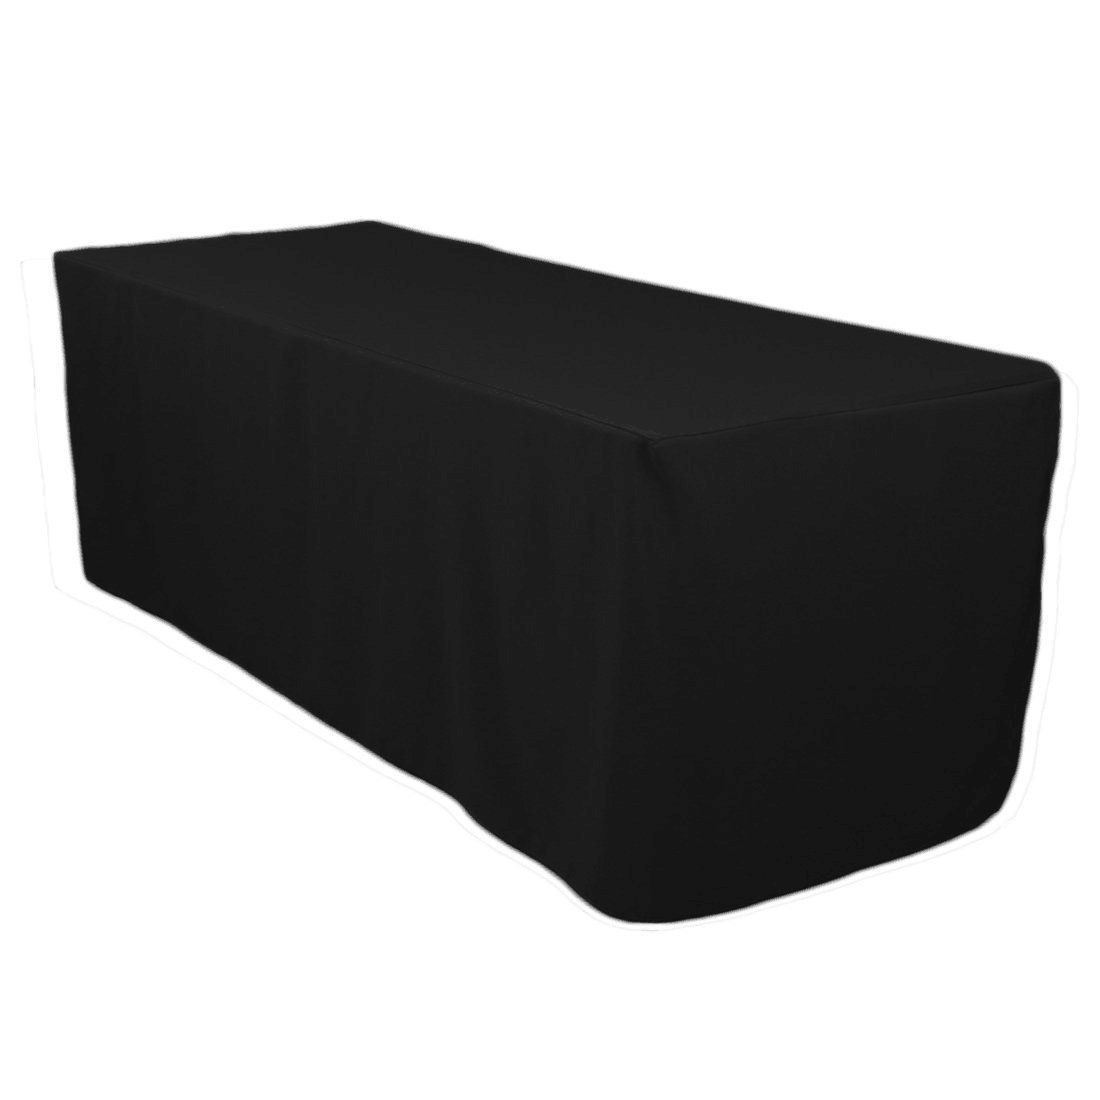 Surmente Table Cloth 6 ft Rectangular Polyester Tablecloth for Weddings, Banquets, or Restaurants (Black)